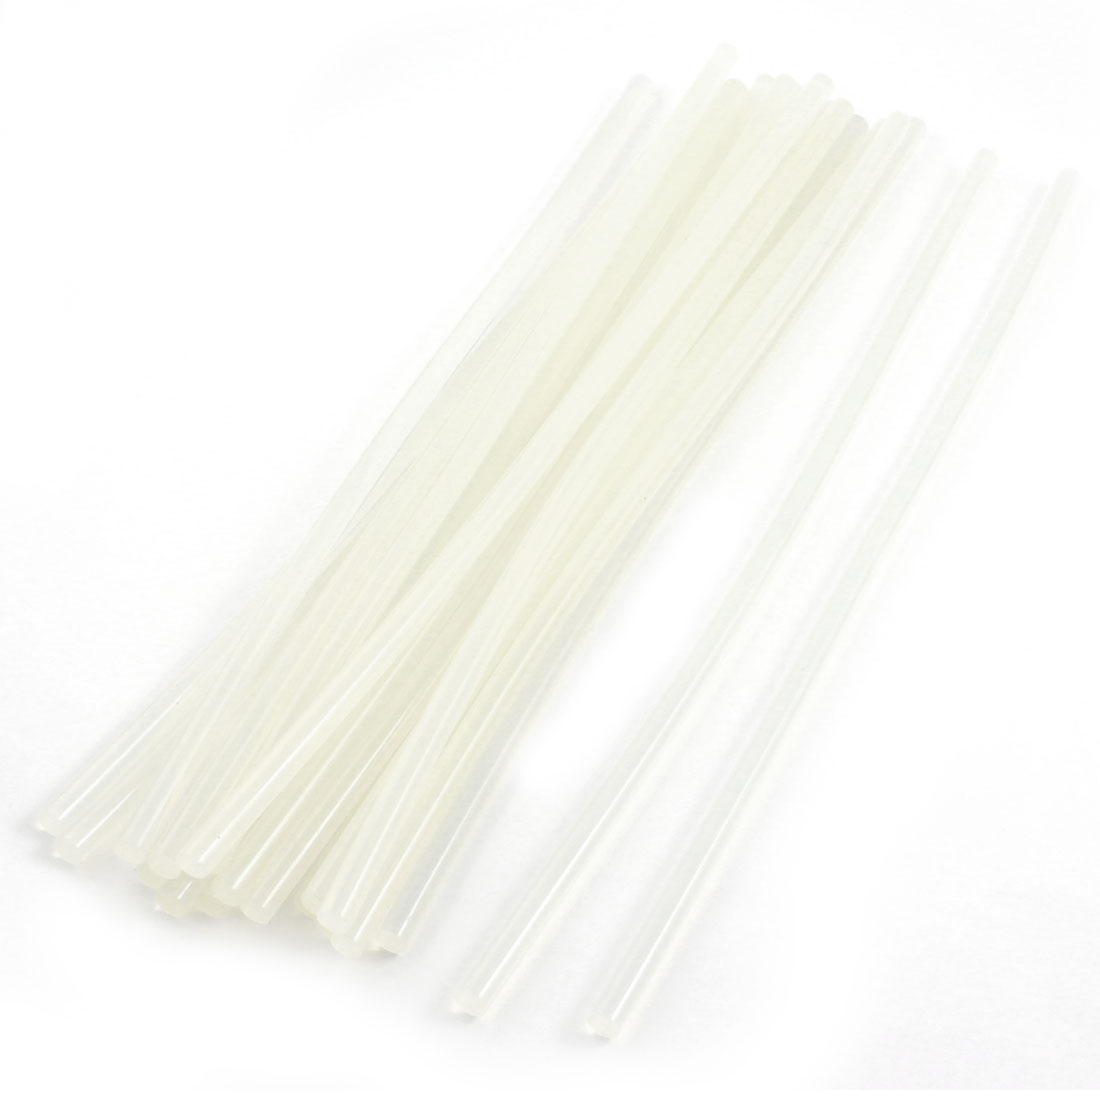 20pcs Spare Parts Adhesive Hot Melt Glue Sticks 7x300mm for Electric Glue Gun